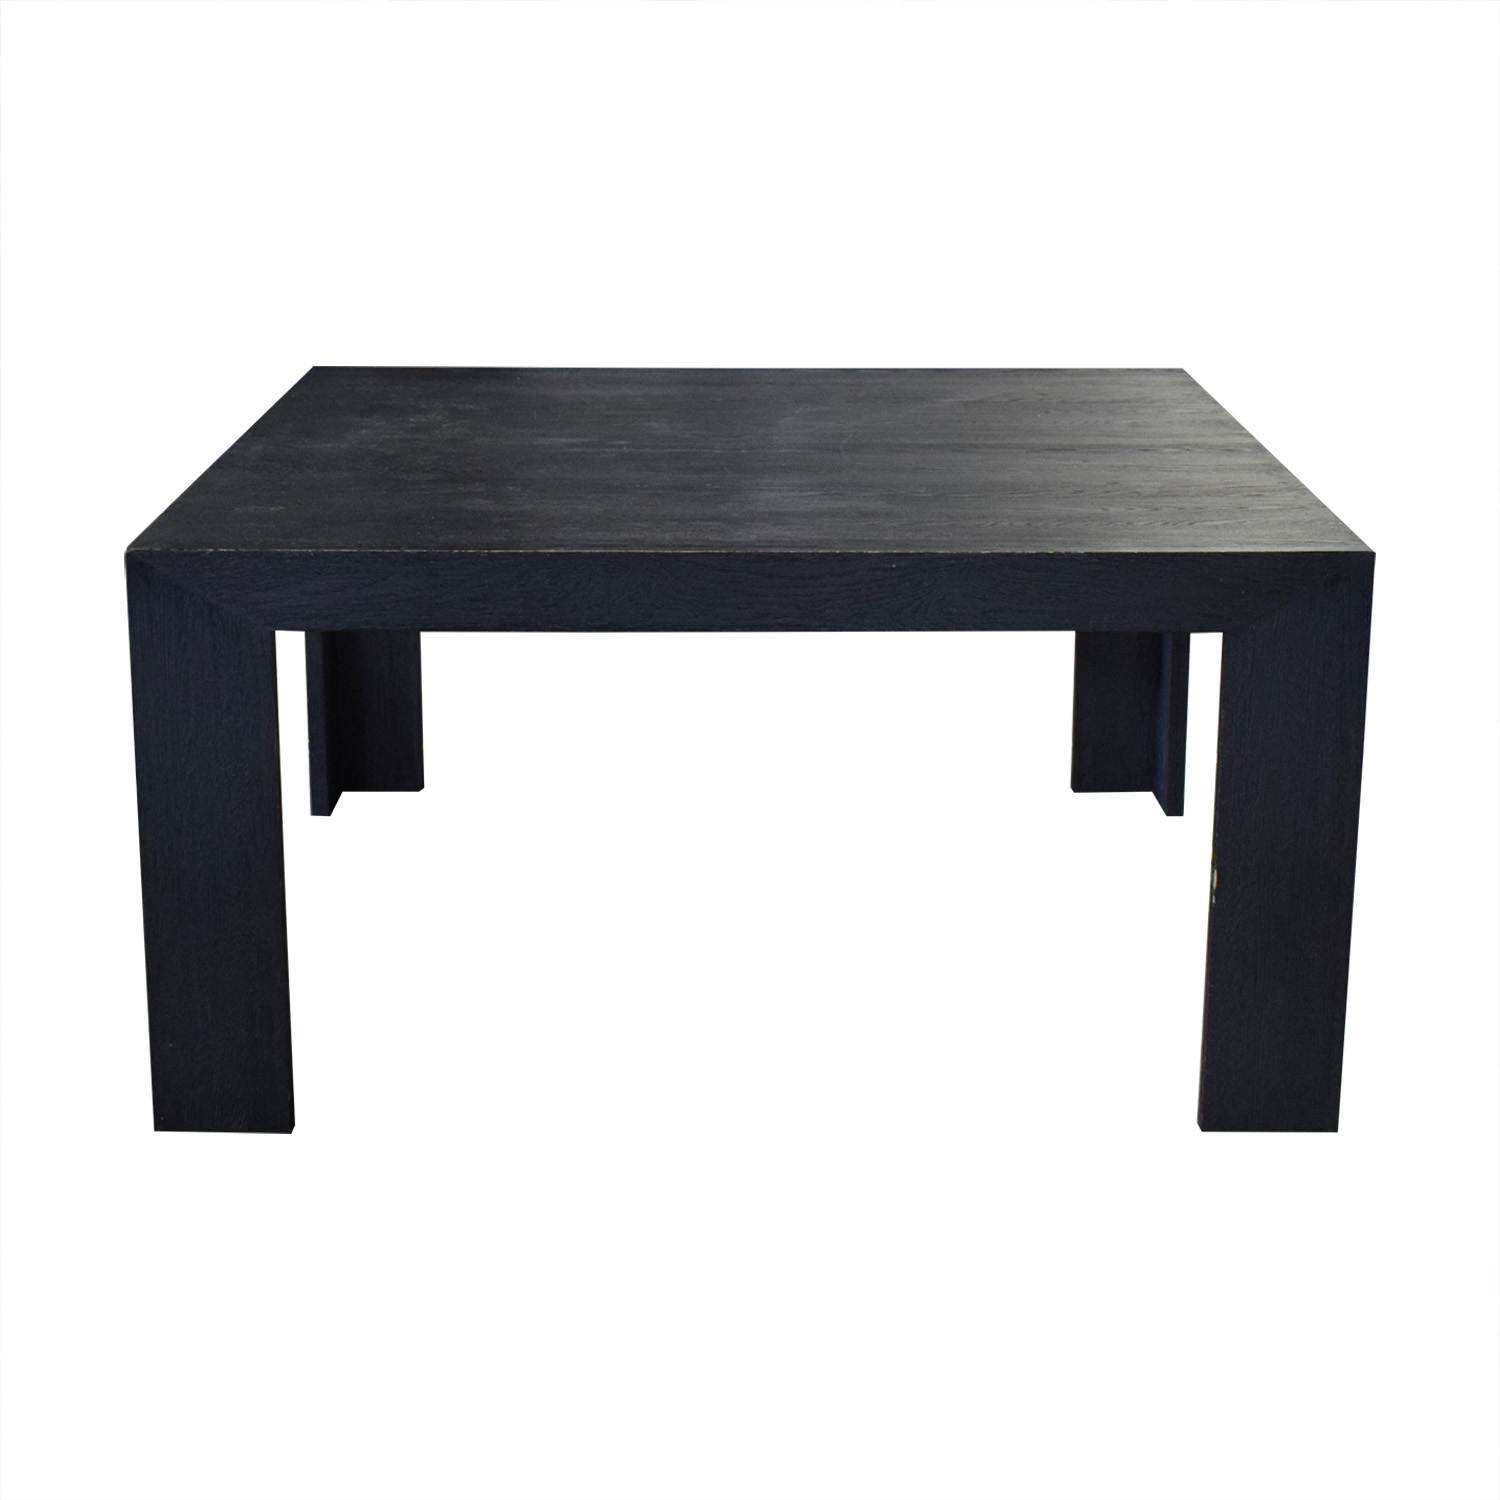 shop Restoration Hardware Restoration Hardware Machinto Square Dining Table online